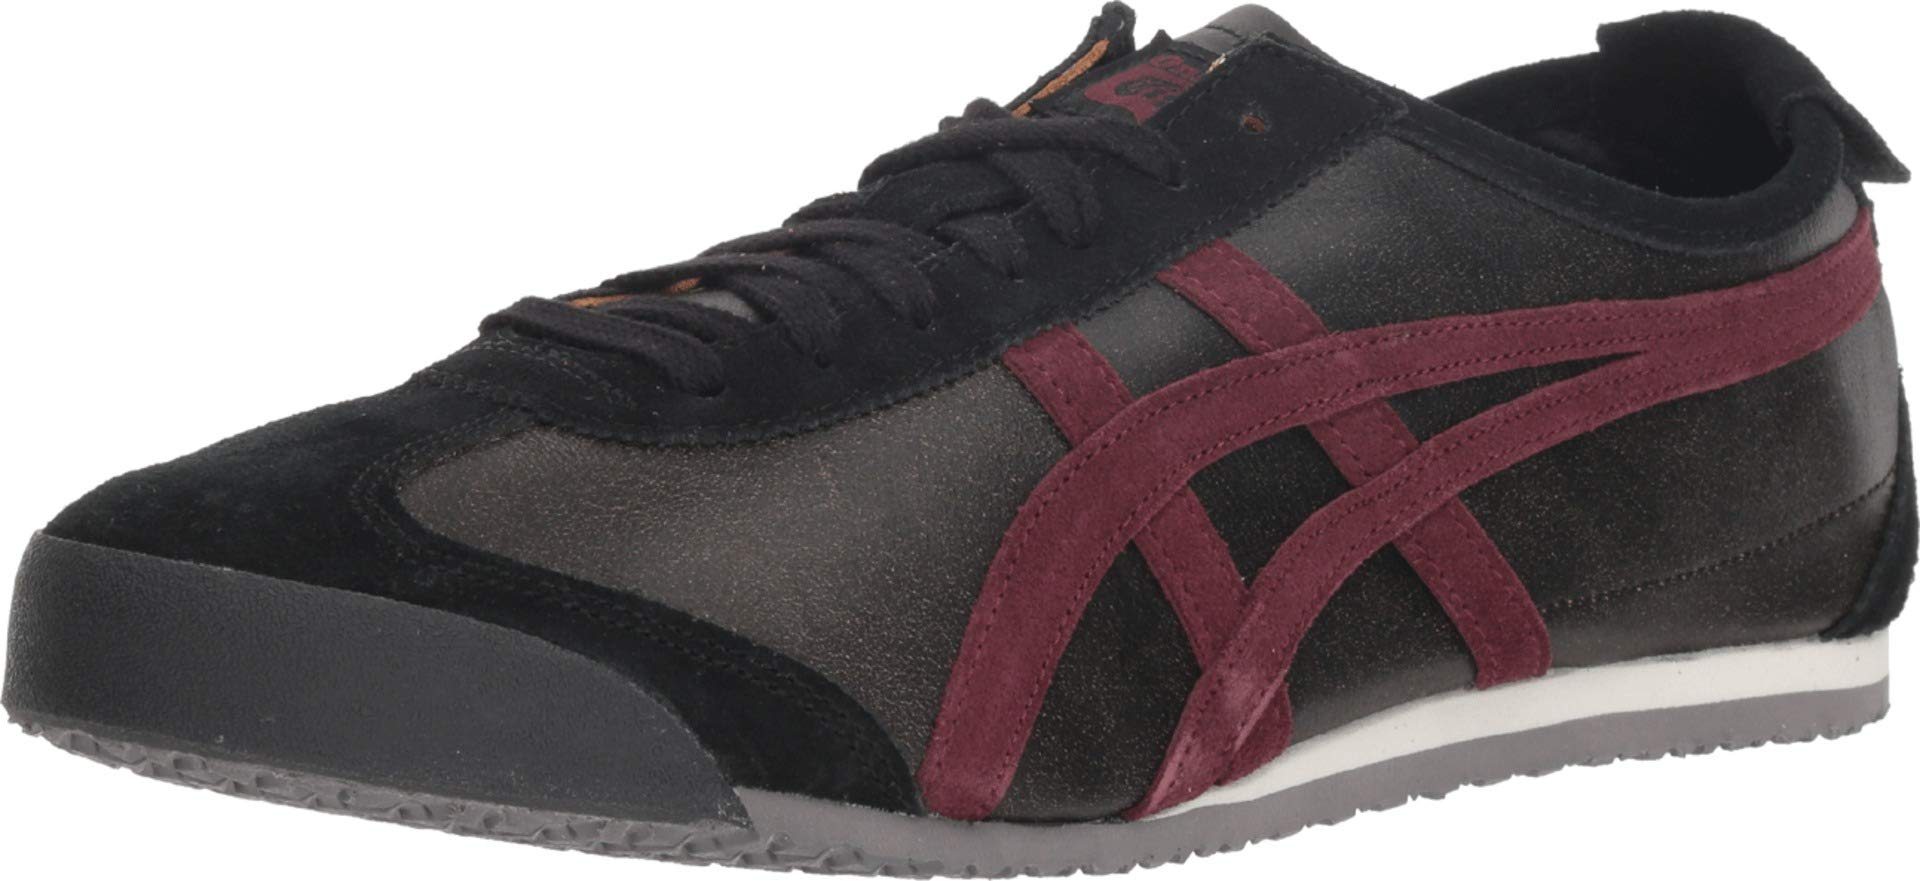 onitsuka tiger mexico 66 black carbon jr